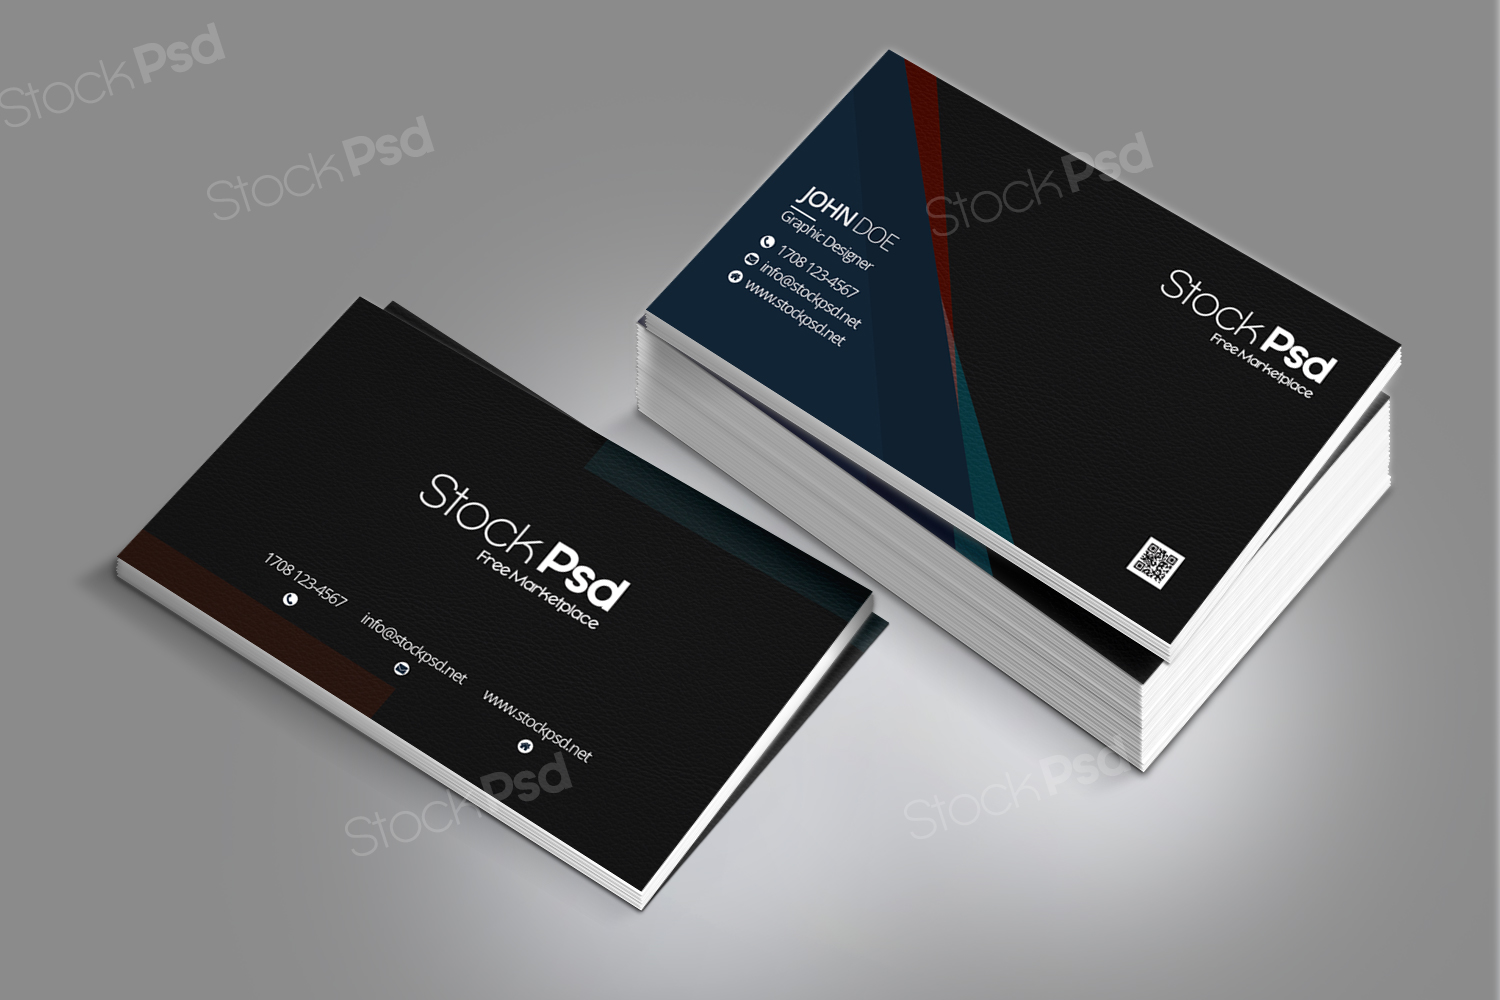 Stockpsd freebie templates business card free psd template business card free psd template cheaphphosting Gallery